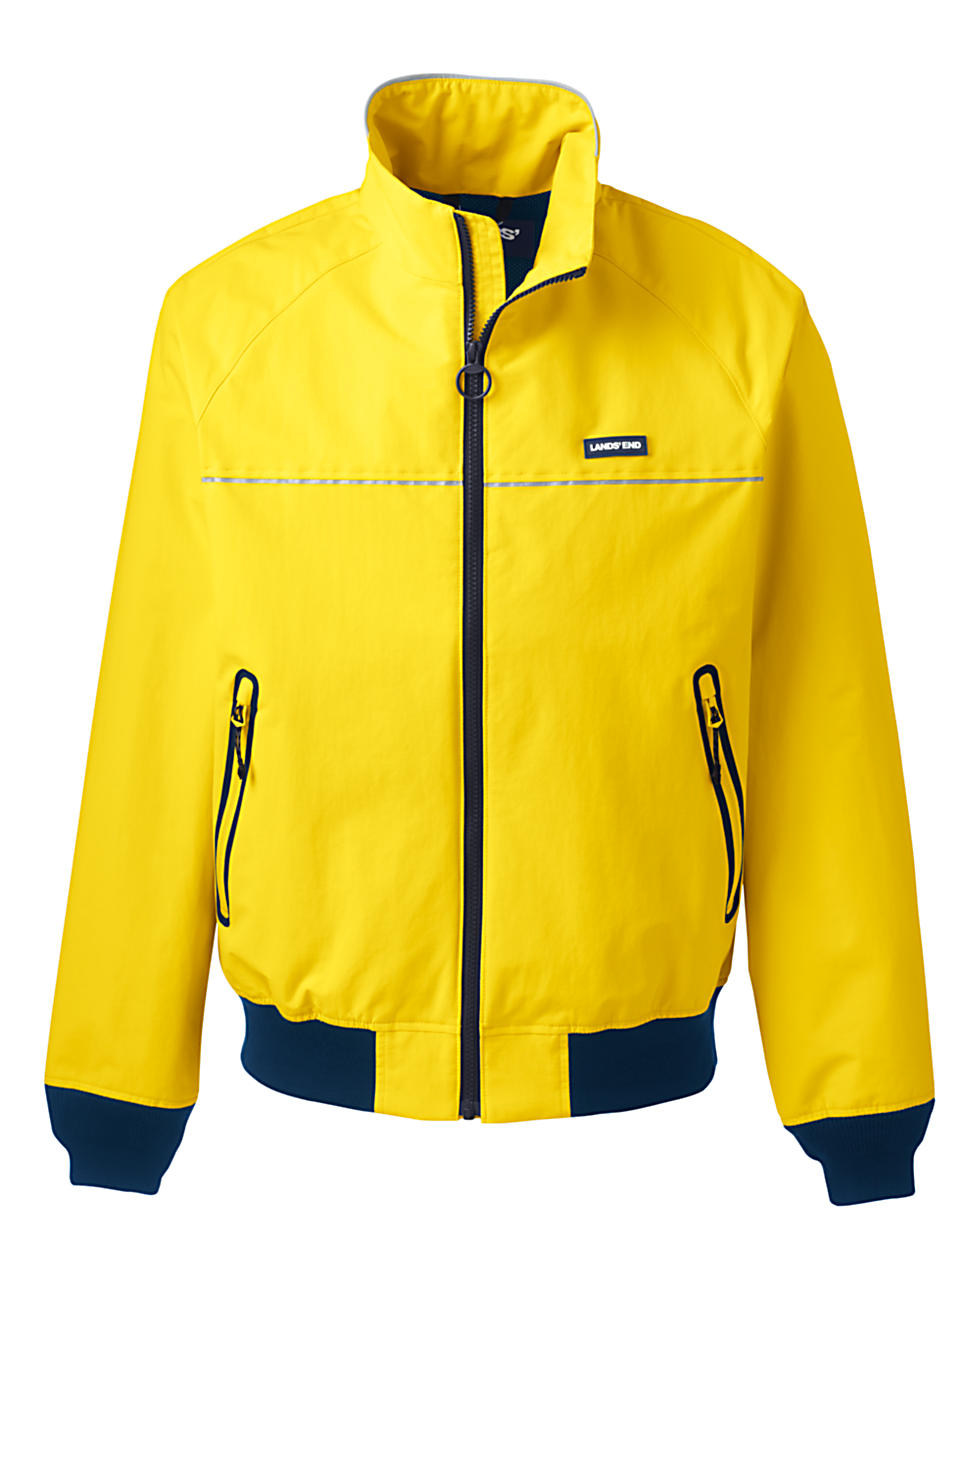 Lands End Mens Lightweight Classic Squall Jacket (Bright Sunshine)